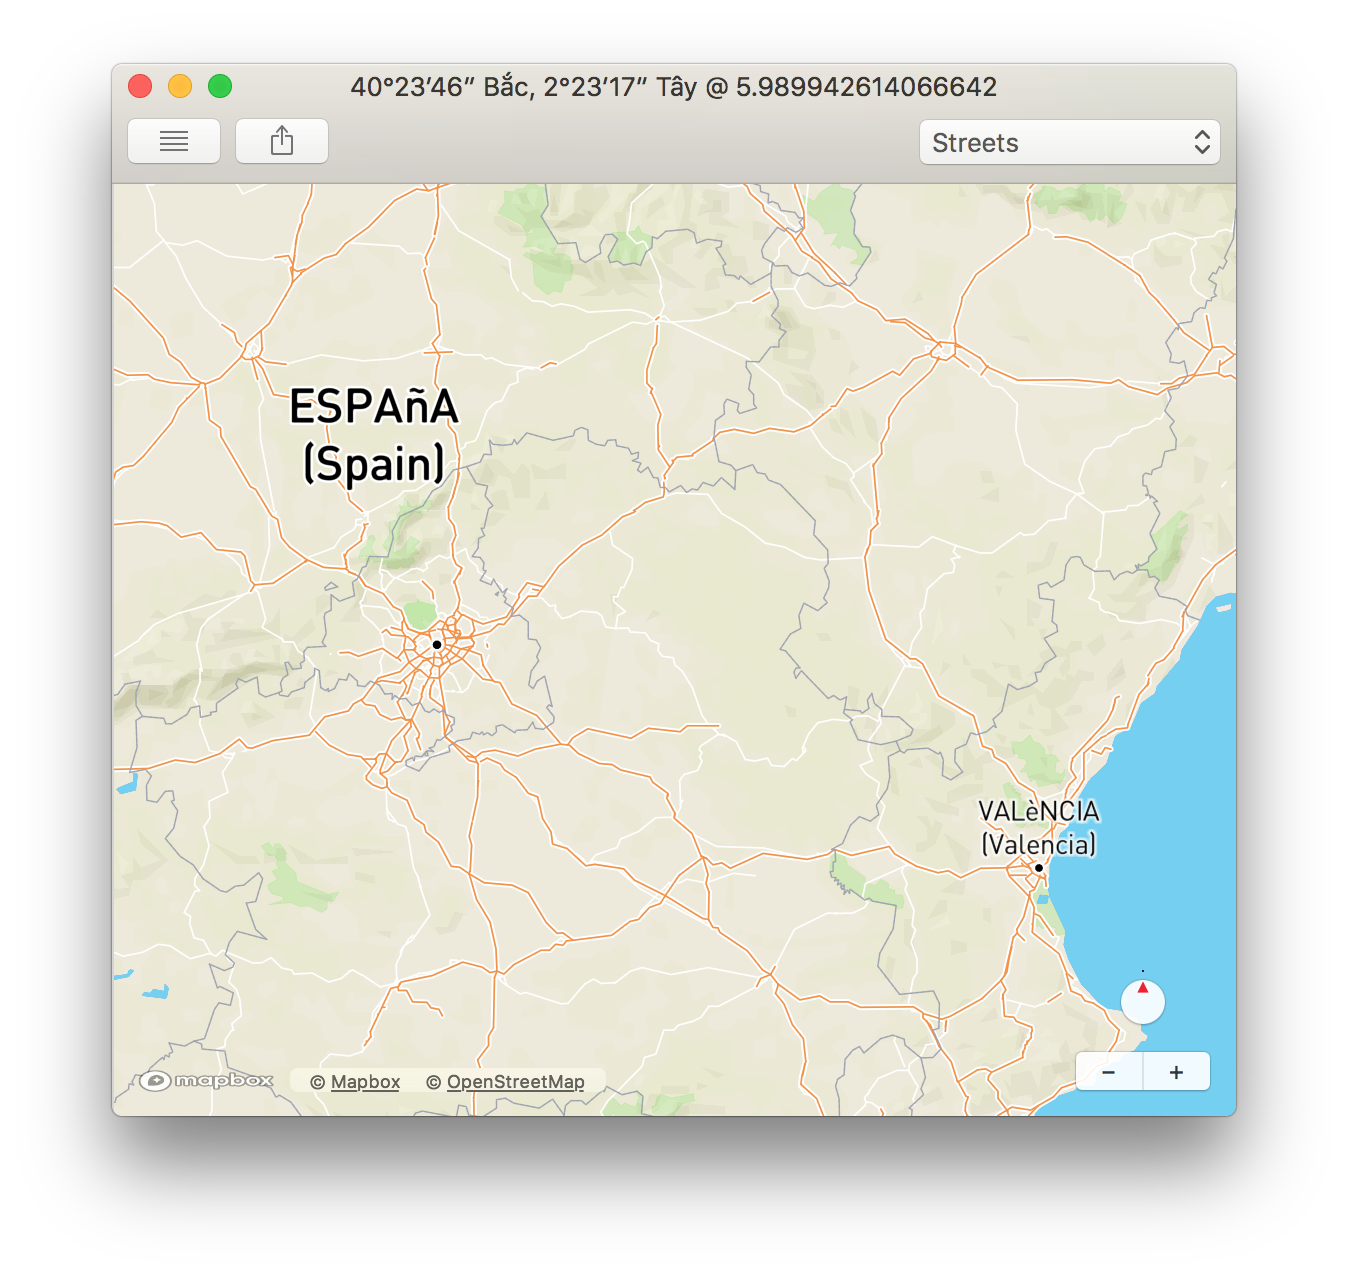 upcase, downcase operators only affect ASCII · Issue #10699 · mapbox